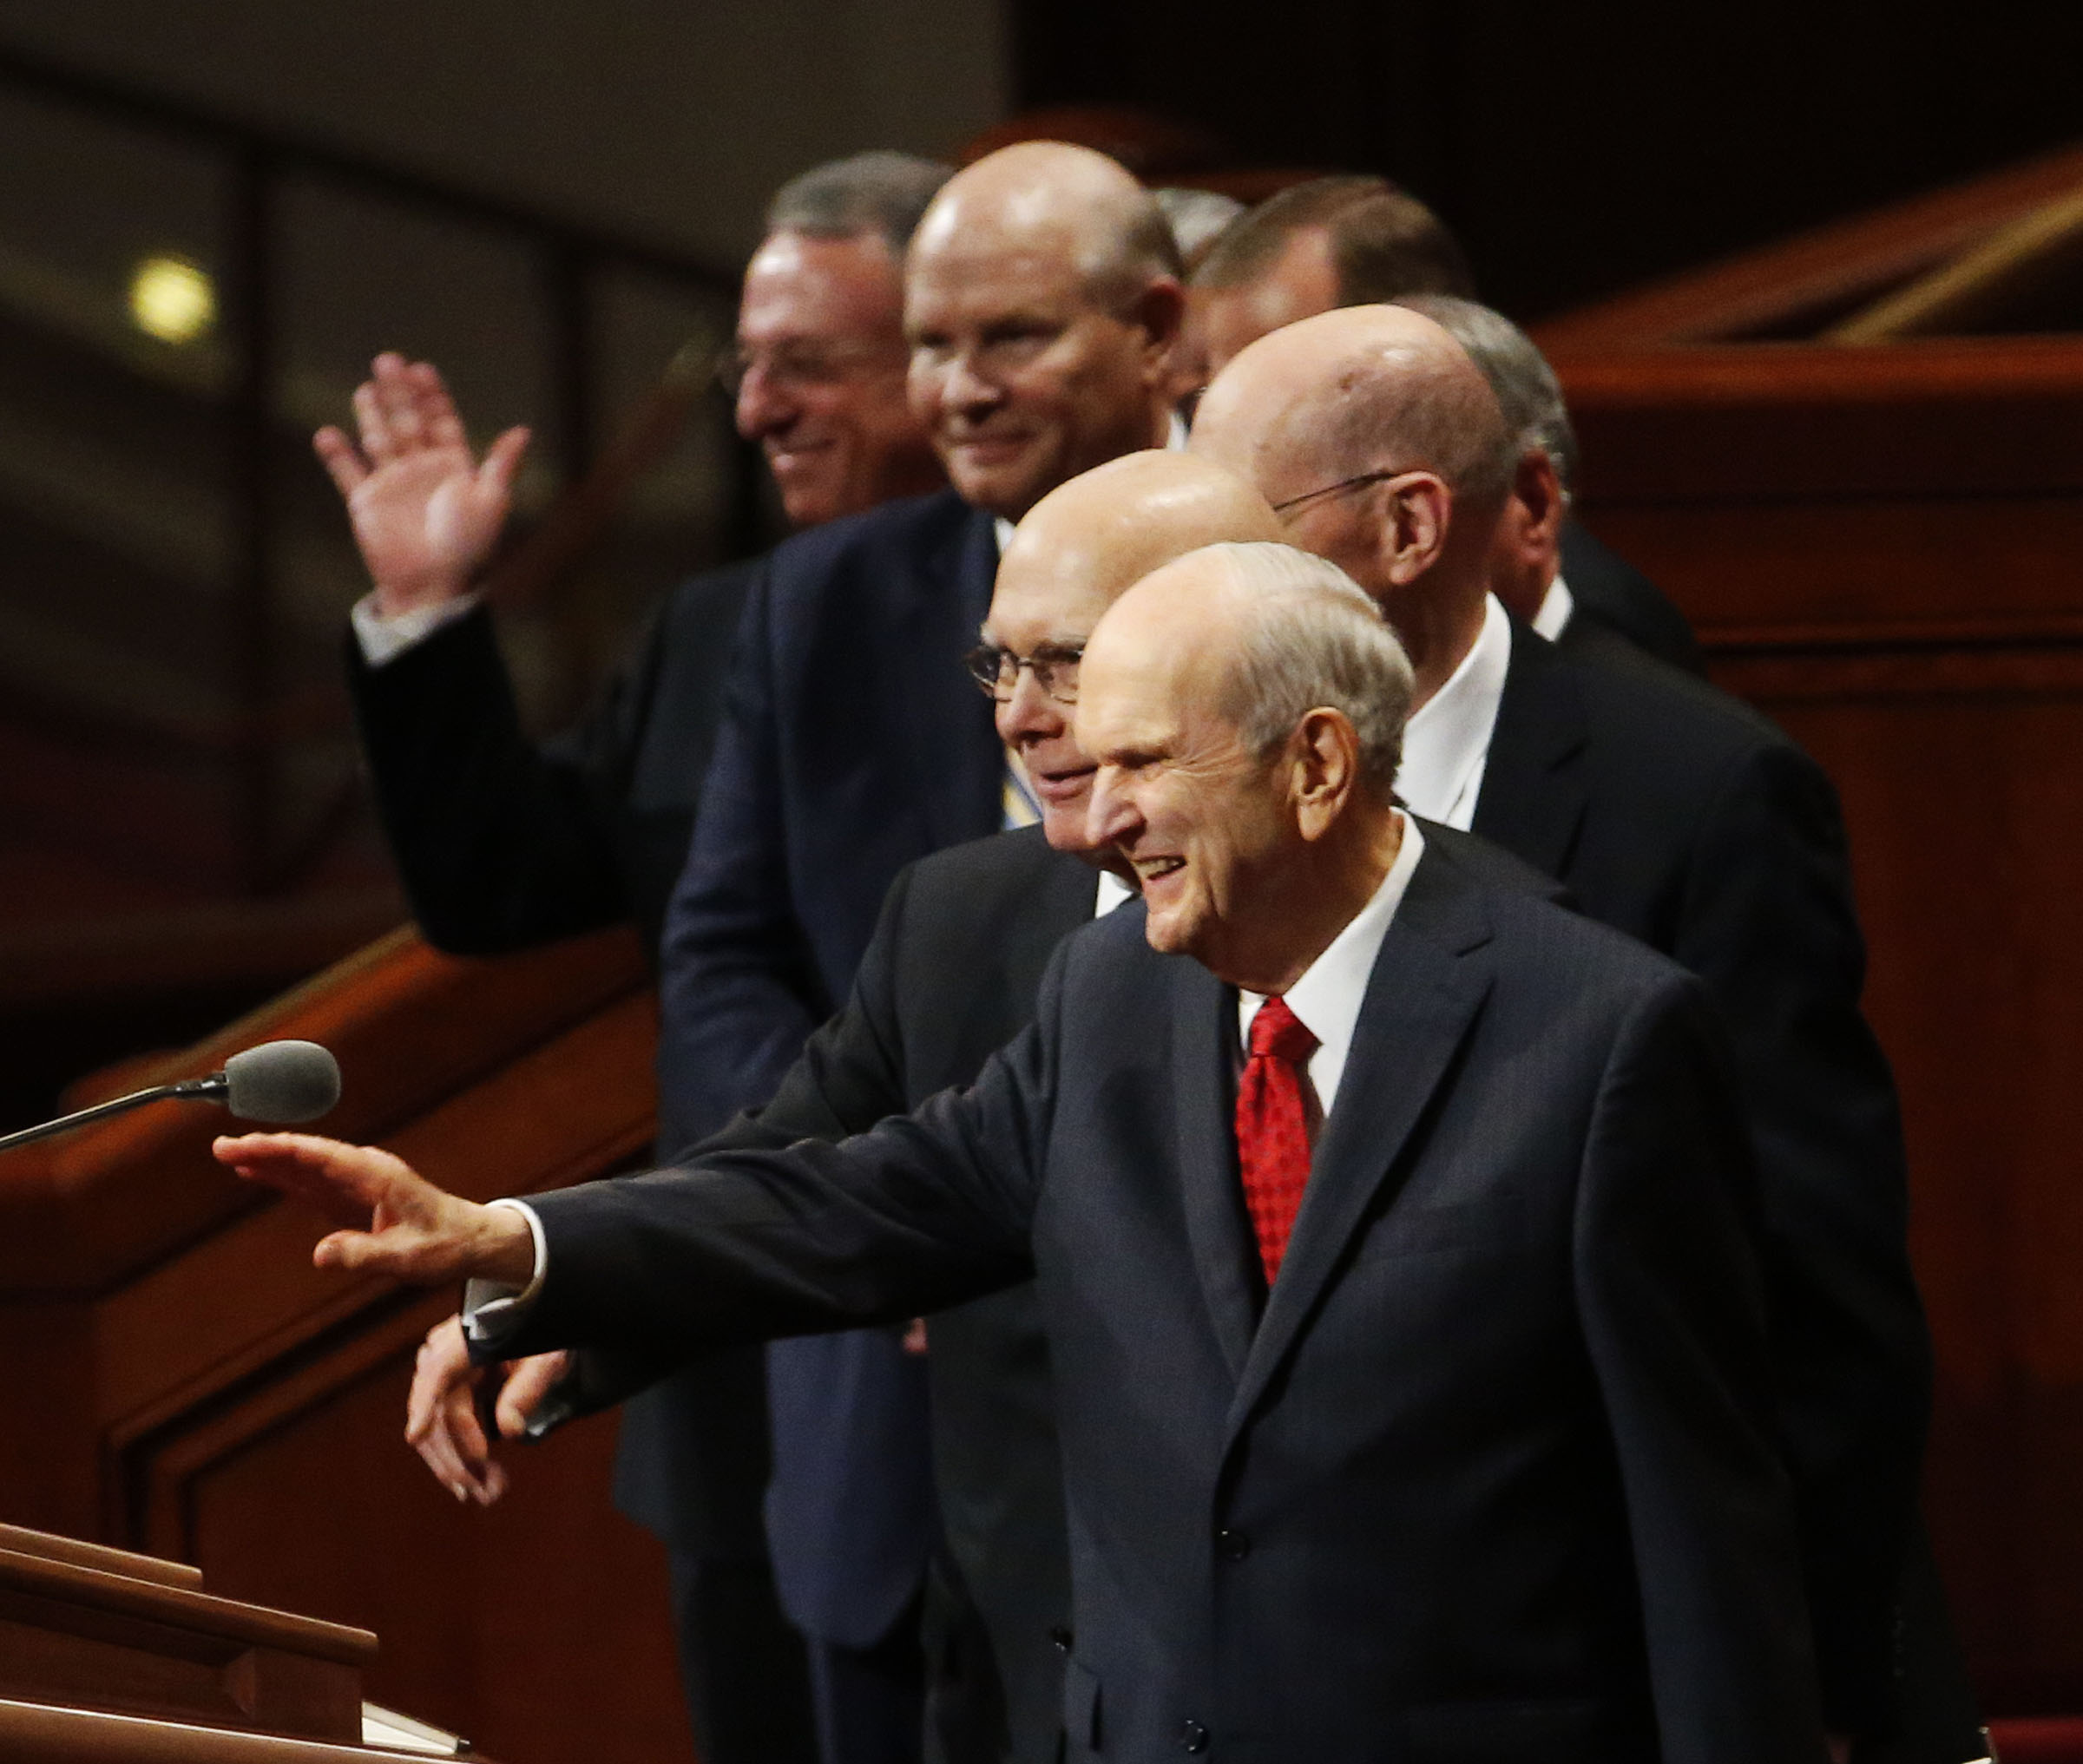 President Russell M. Nelson of The Church of Jesus Christ of Latter-day Saints, front, waves as he and his counselors, President Dallin H. Oaks, first counselor in the First Presidency, and President Henry B. Eyring, second counselor in the First Presidency, leave the Conference Center following the priesthood session of the 189th Annual General Conference in Salt Lake City on Saturday, April 6, 2019.